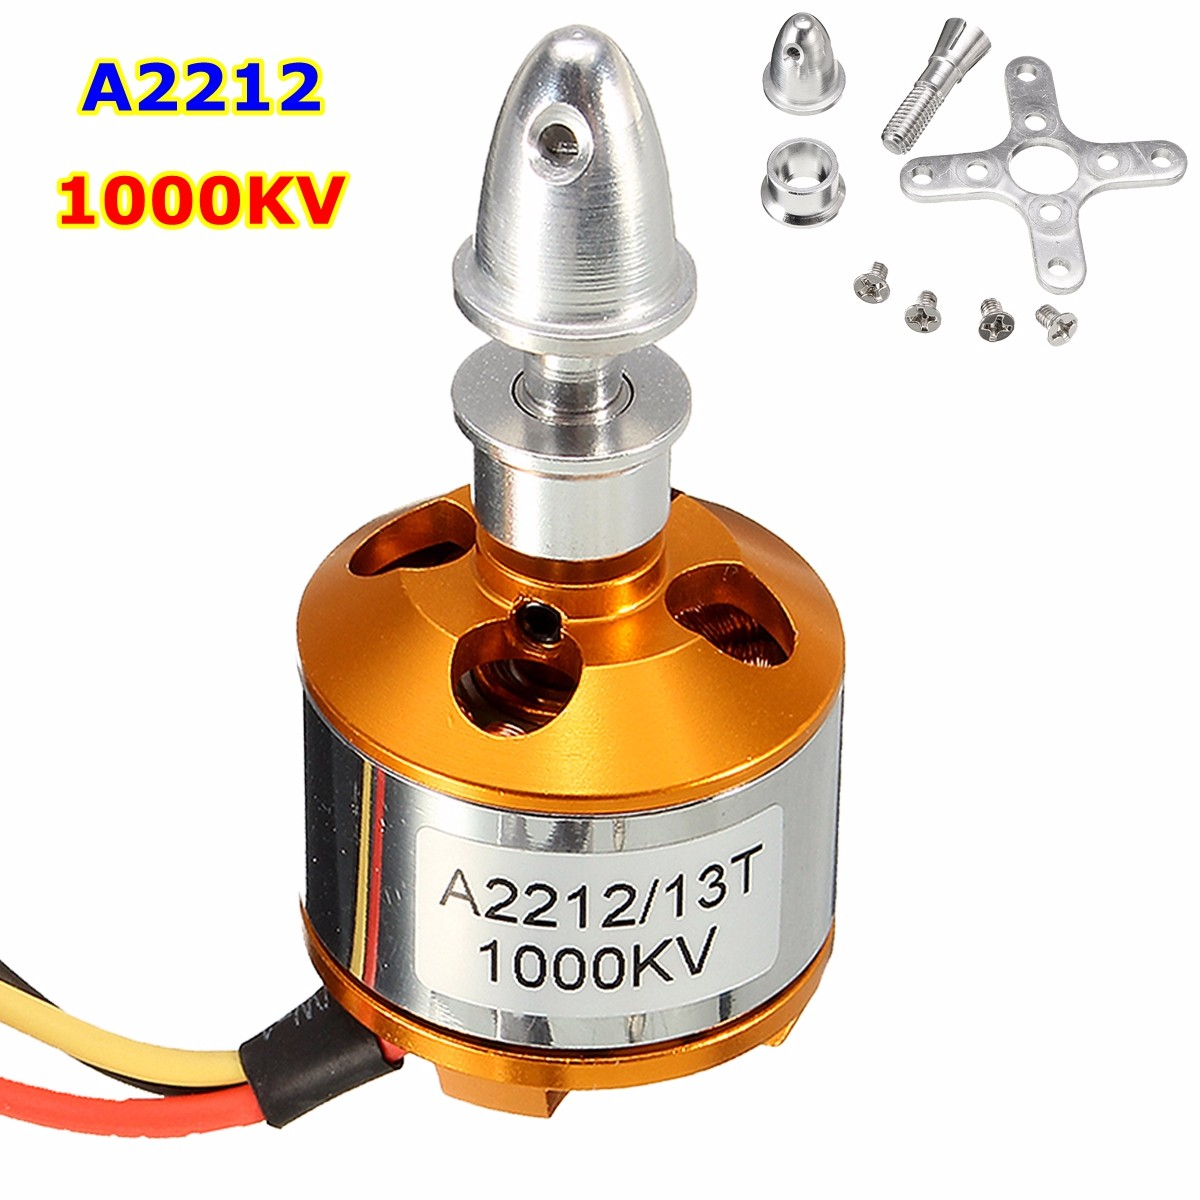 1000Kv A2212 Brushless Drone Outrunner Motor For Aircraft Helicopter Quadcopter 1000kv a2212 brushless drone outrunner motor for aircraft helicopter quadcopter